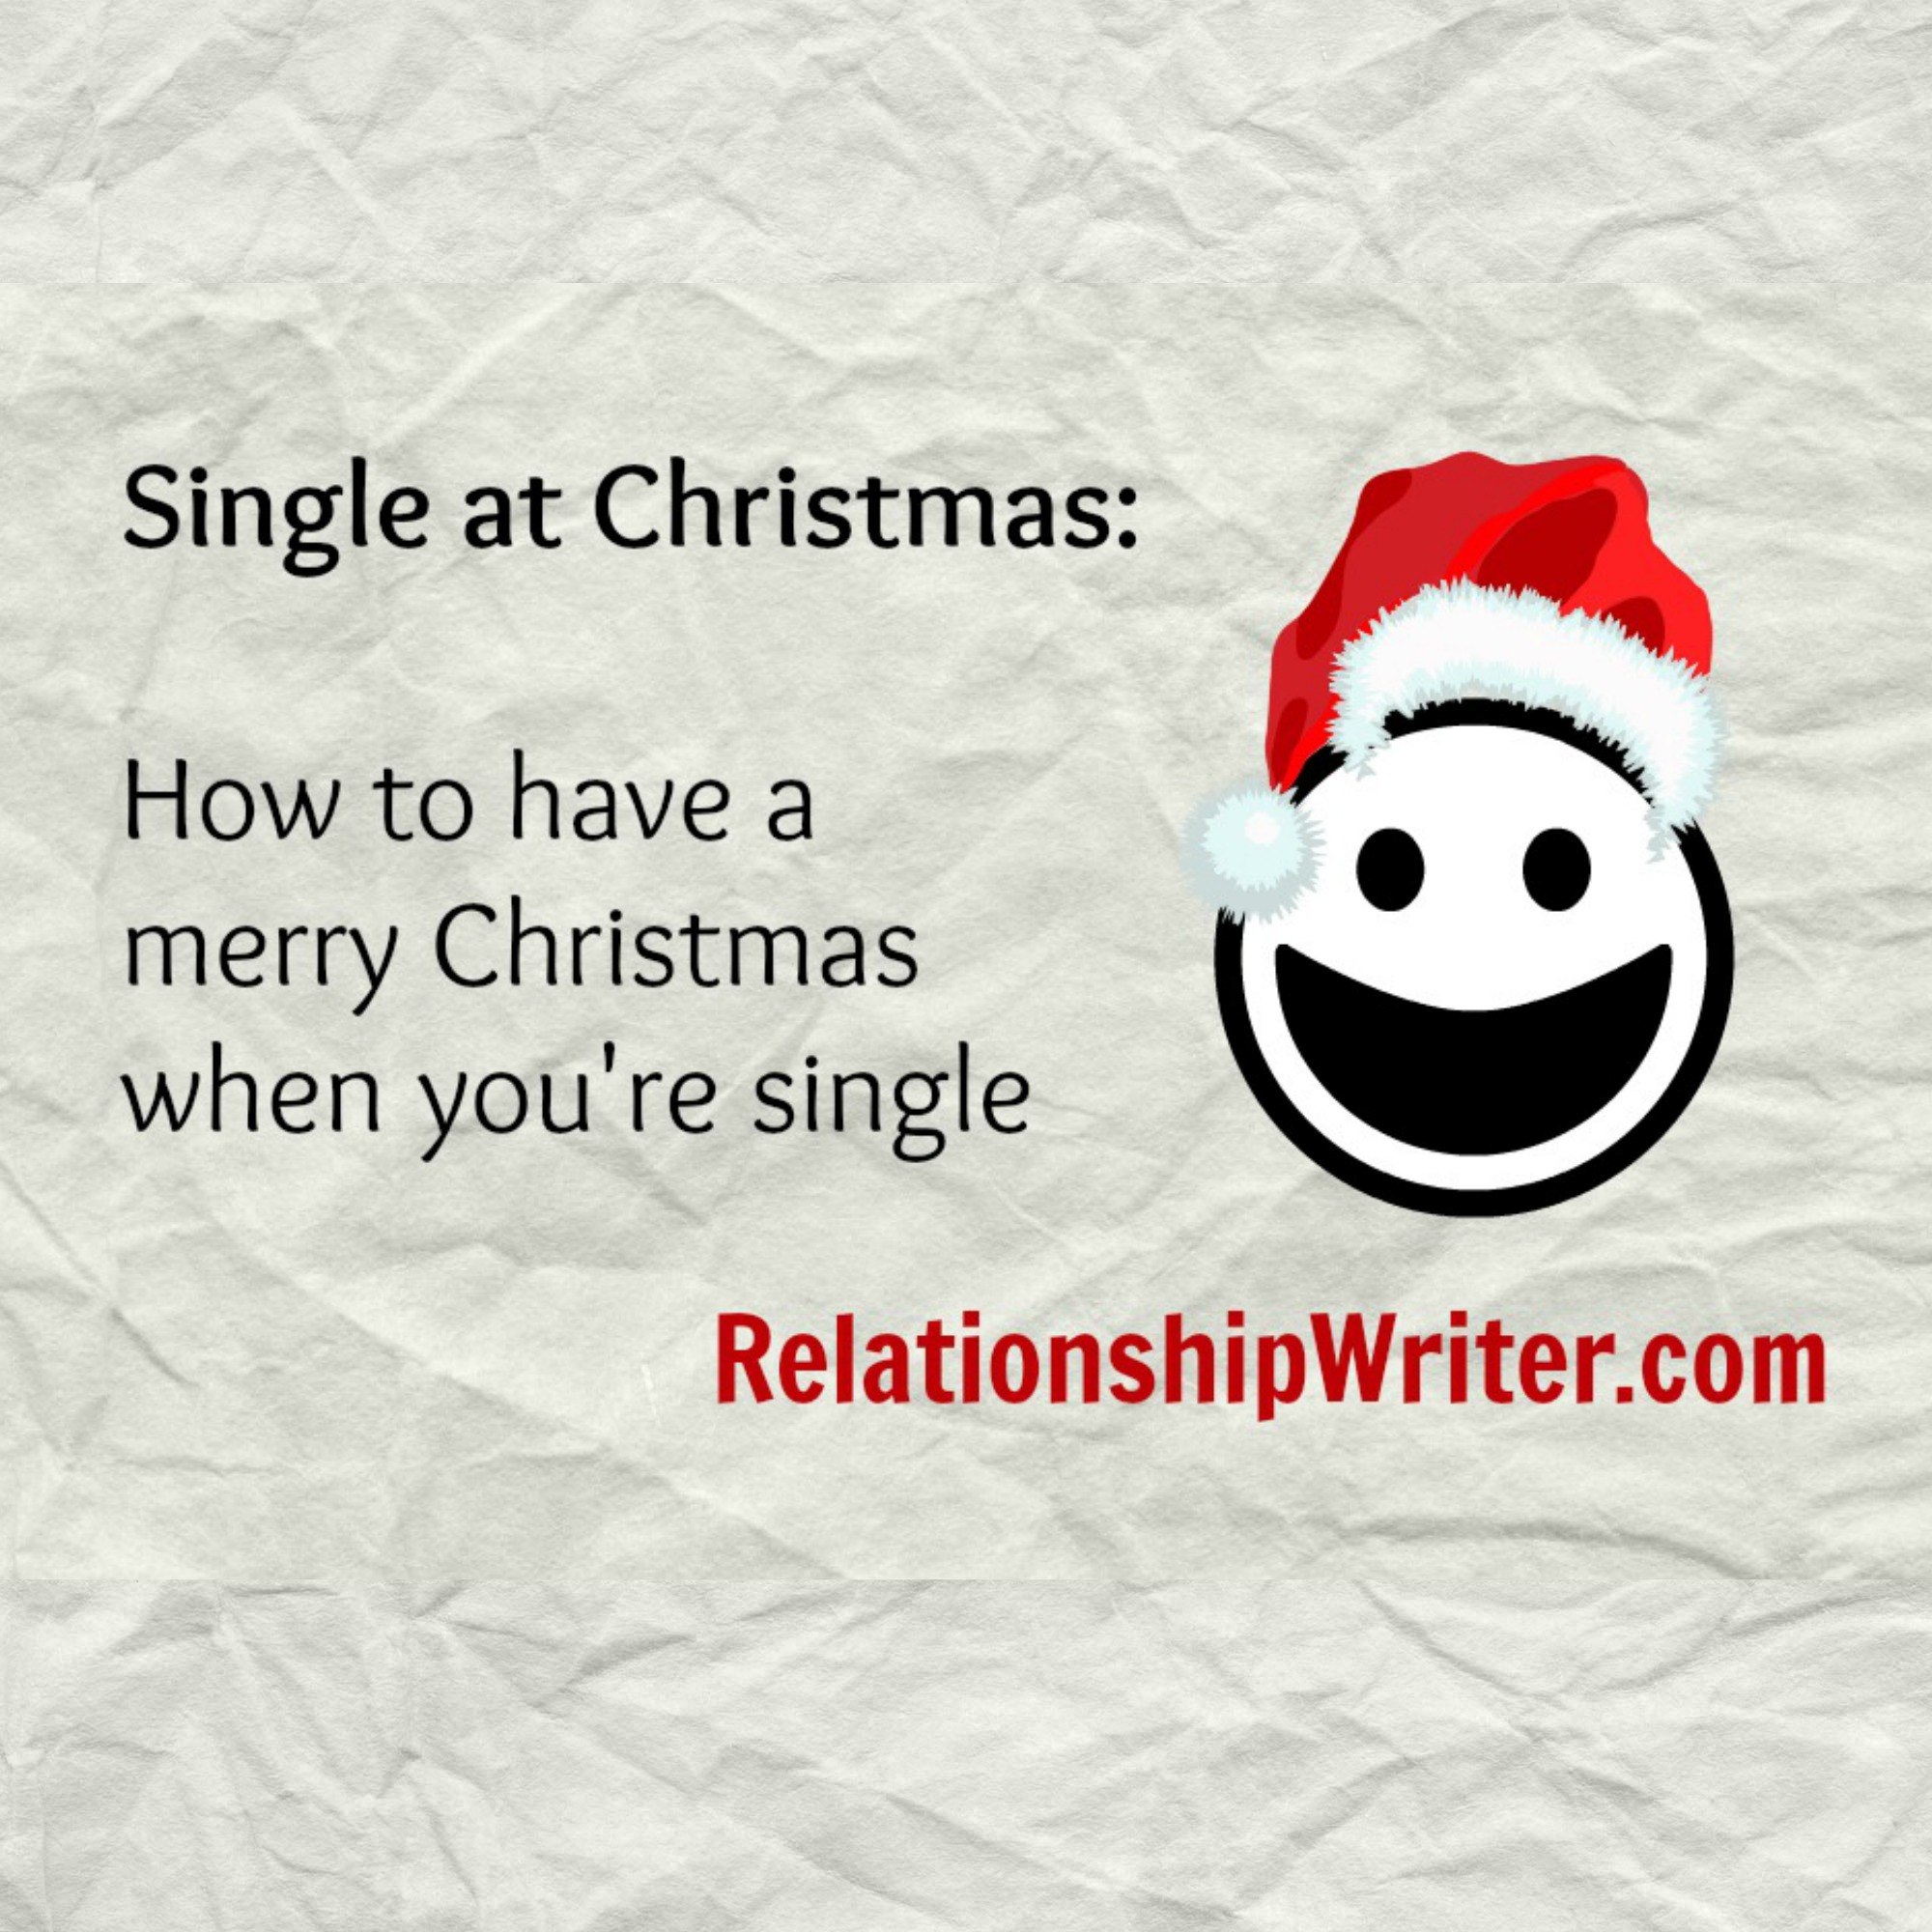 Single at Christmas: How to have a merry Christmas when you're single